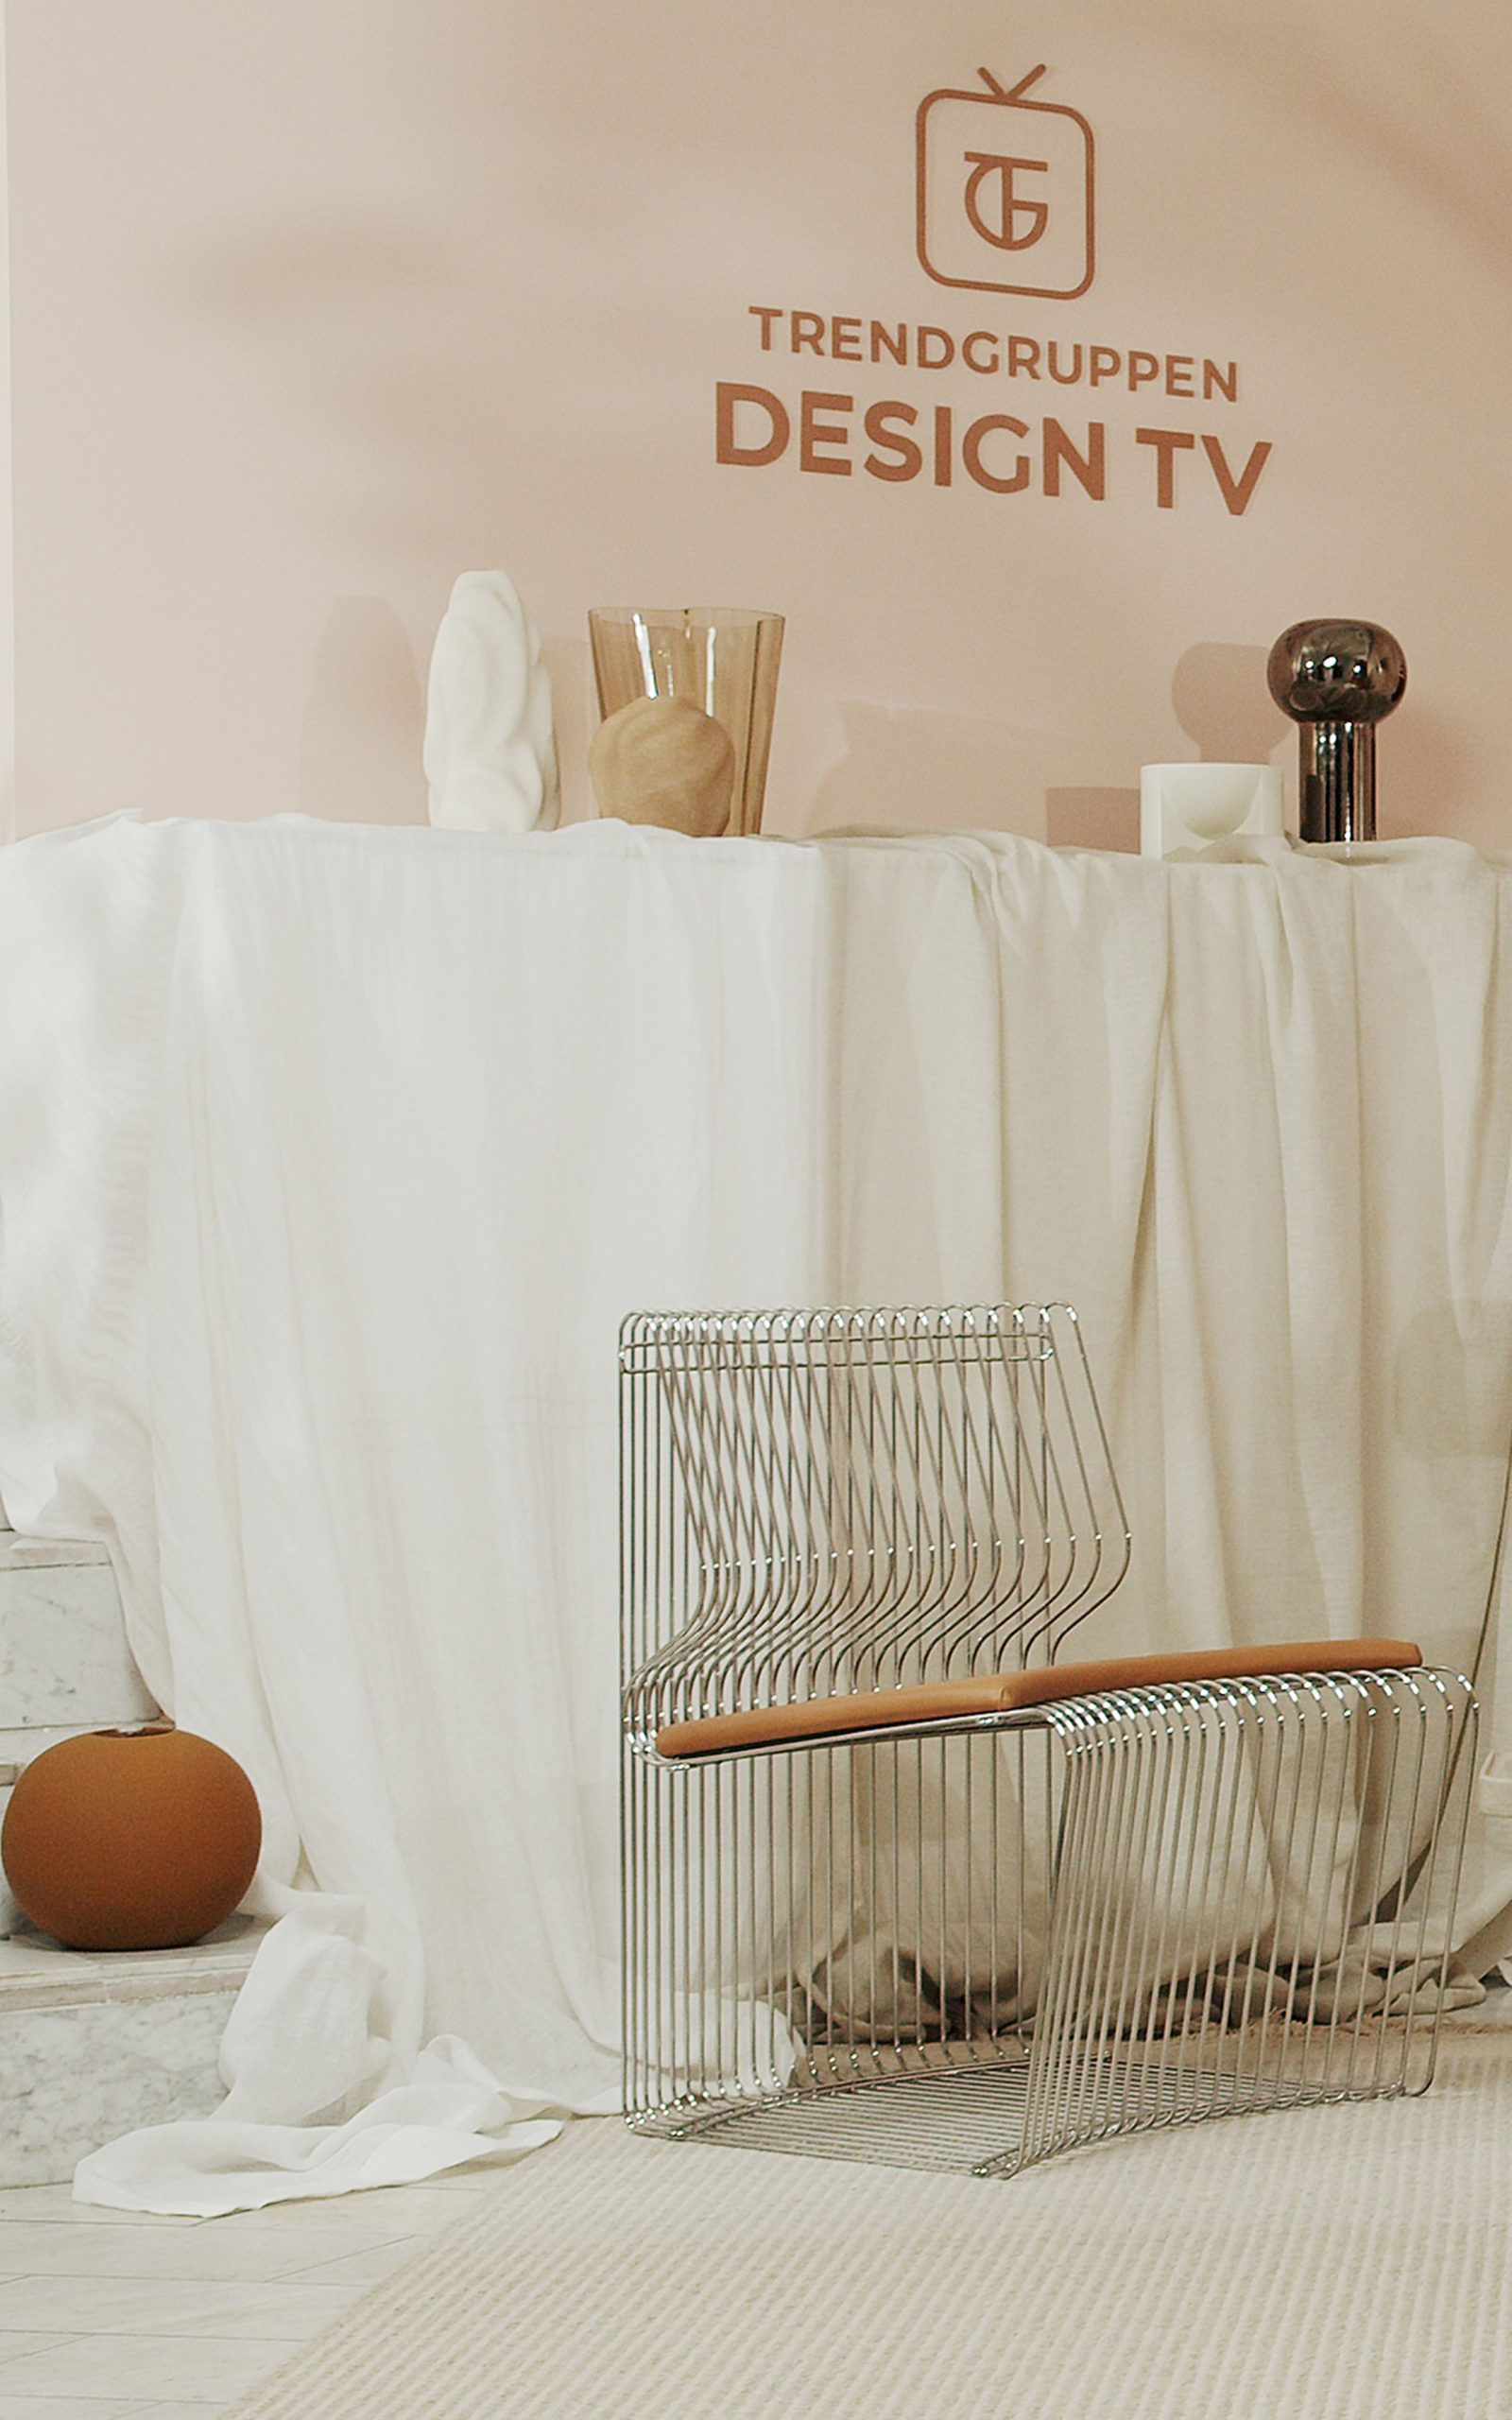 A steel chair and glass and ceramic vases on TV set